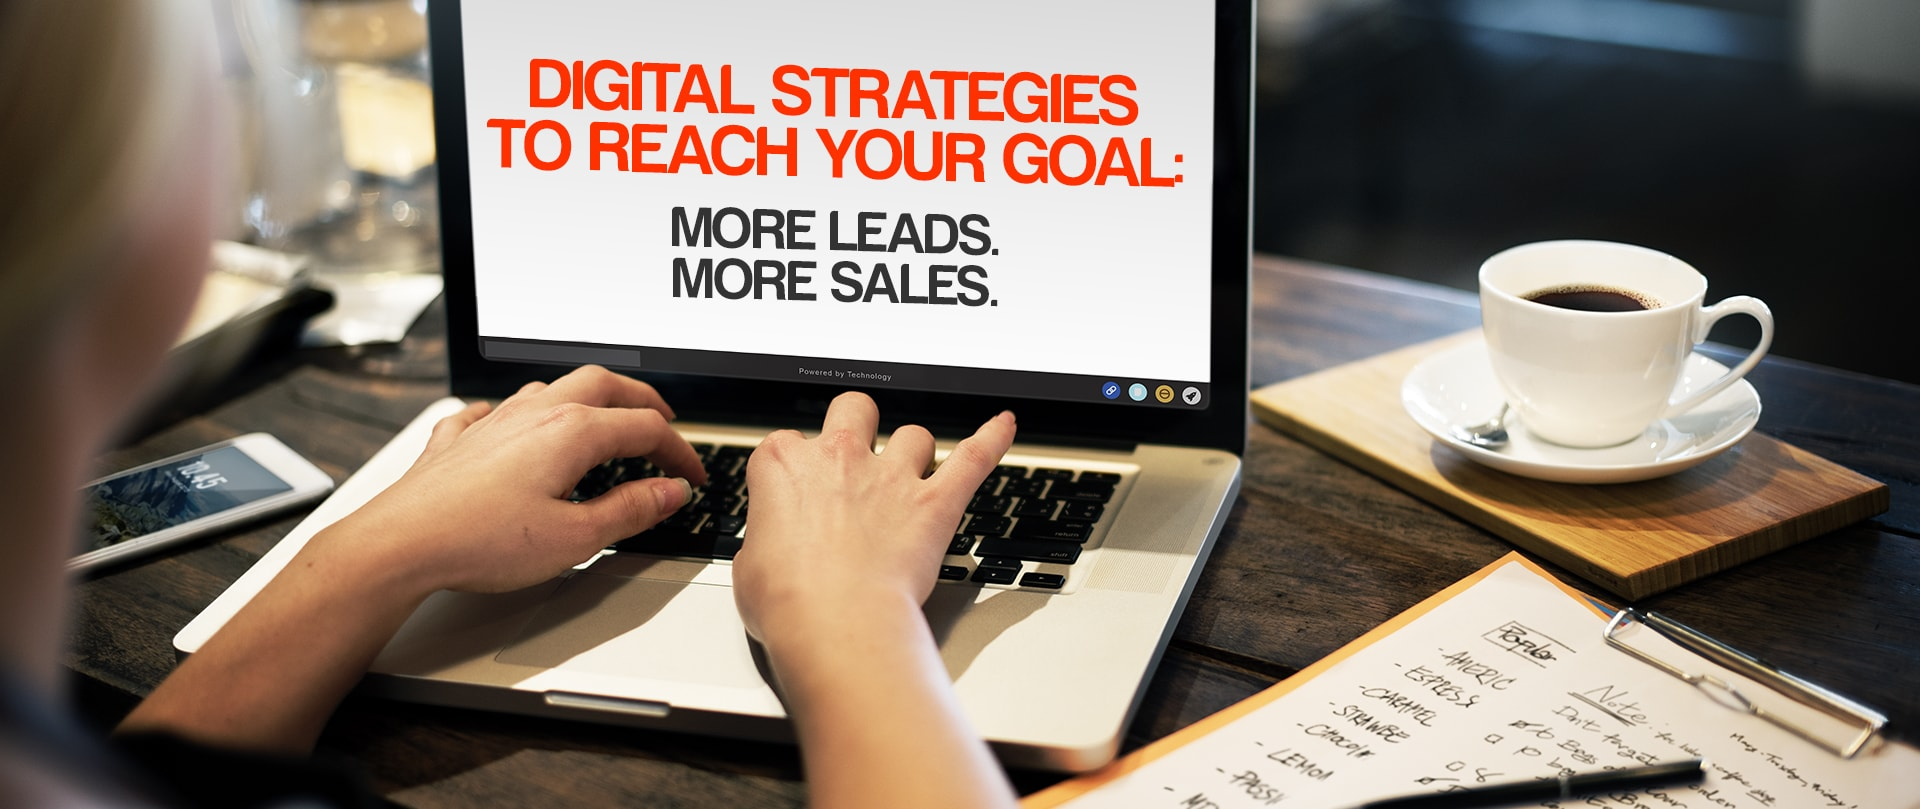 DM Agency - Digital Strategies to Reach Your Goal: More Leads. More Sales.